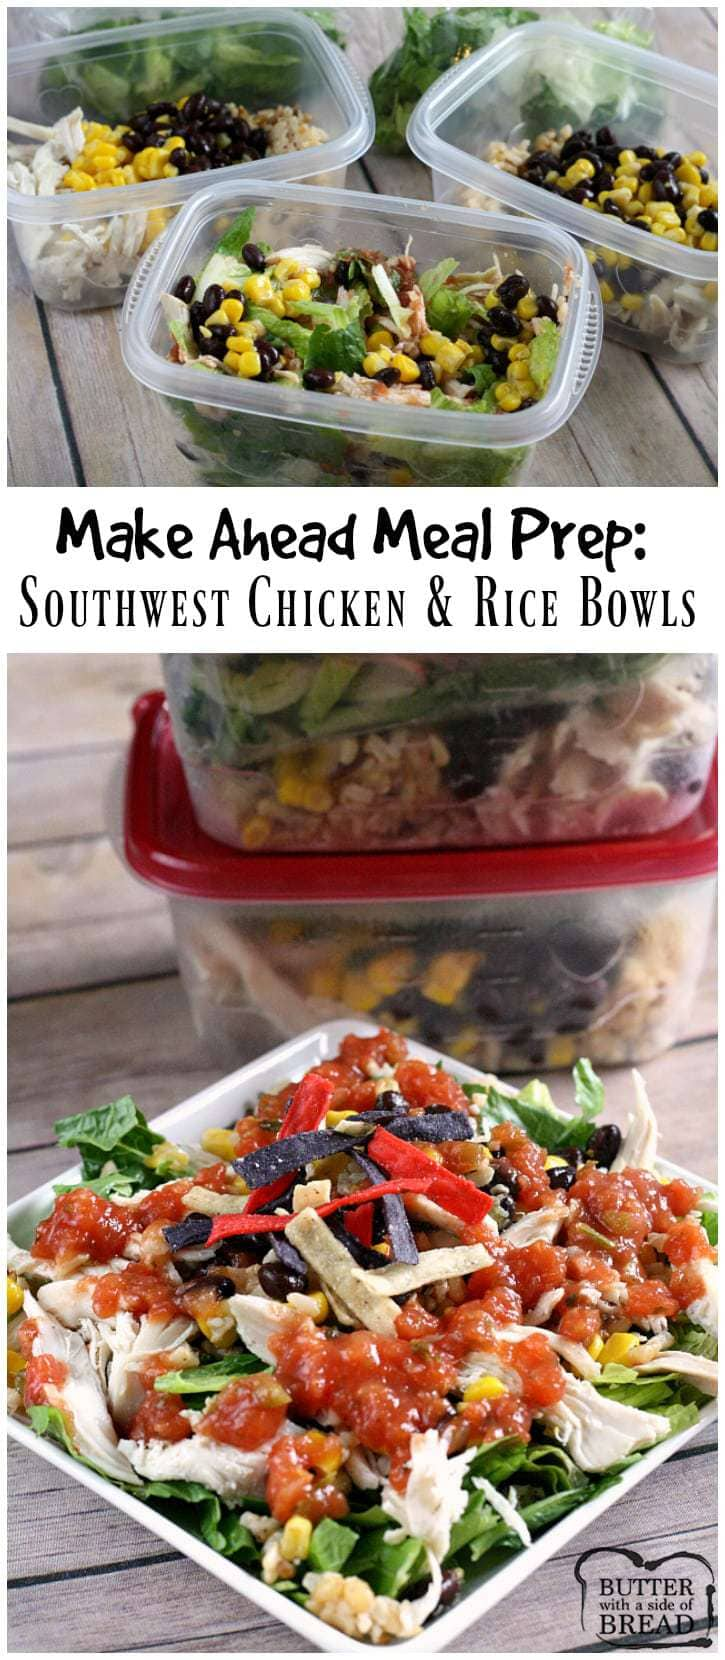 Make Ahead Meal Prep: Southwest Chicken and Rice Bowls - Butter With a Side of Bread